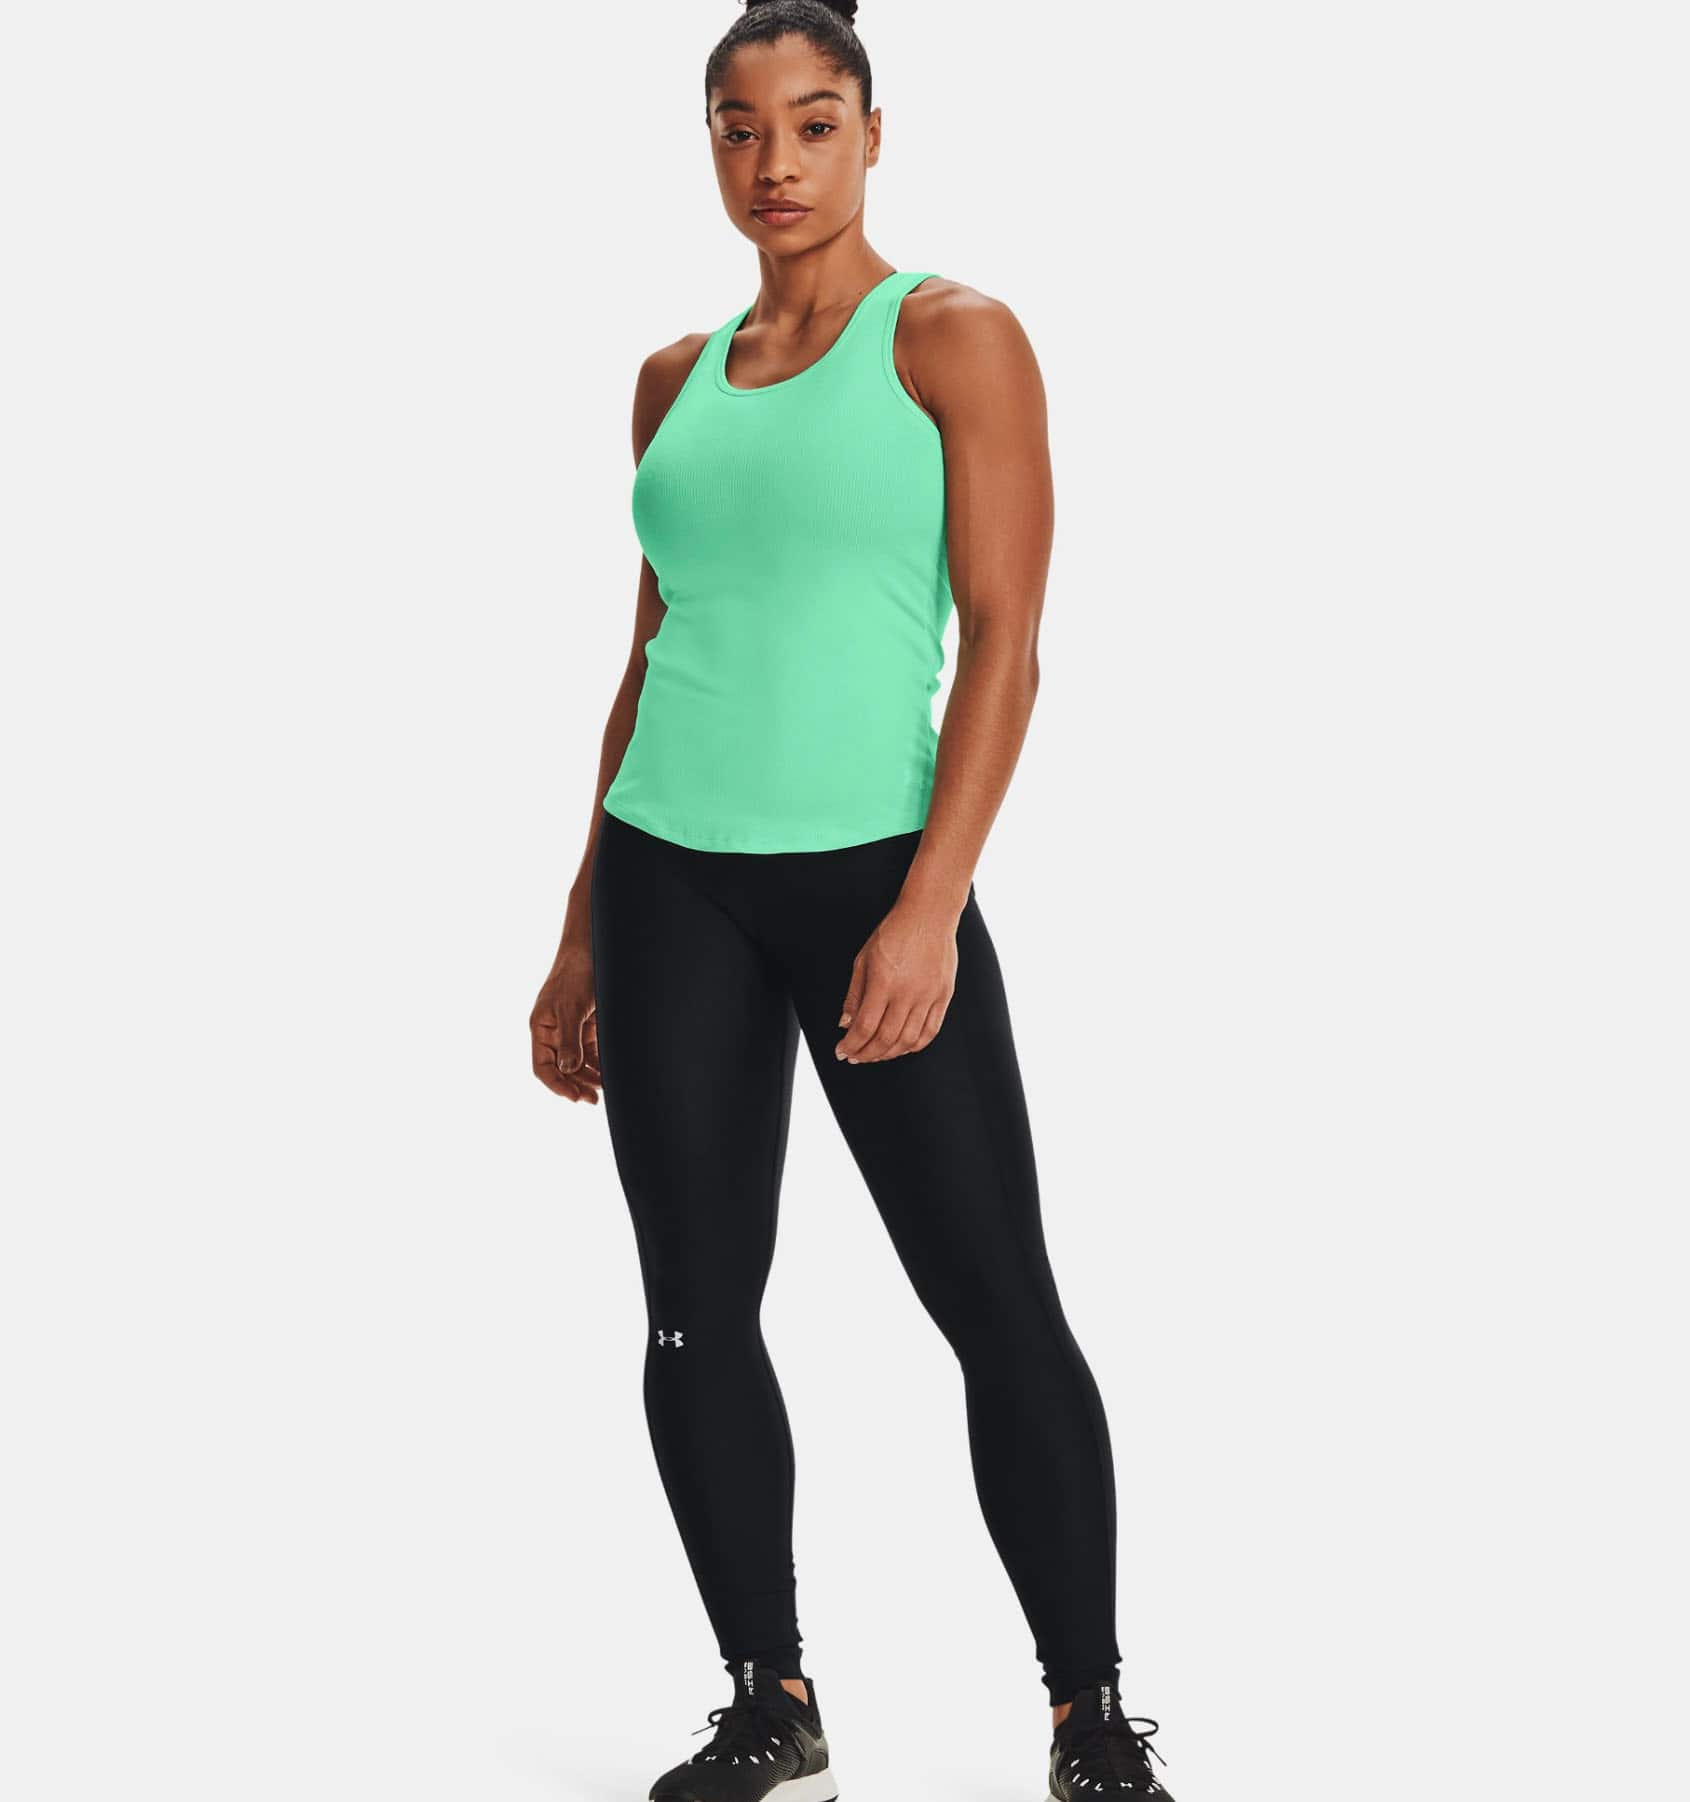 Under Armour: 25% Off Select Styles For Back to School, From $9.99 + FS w/ Account Registration